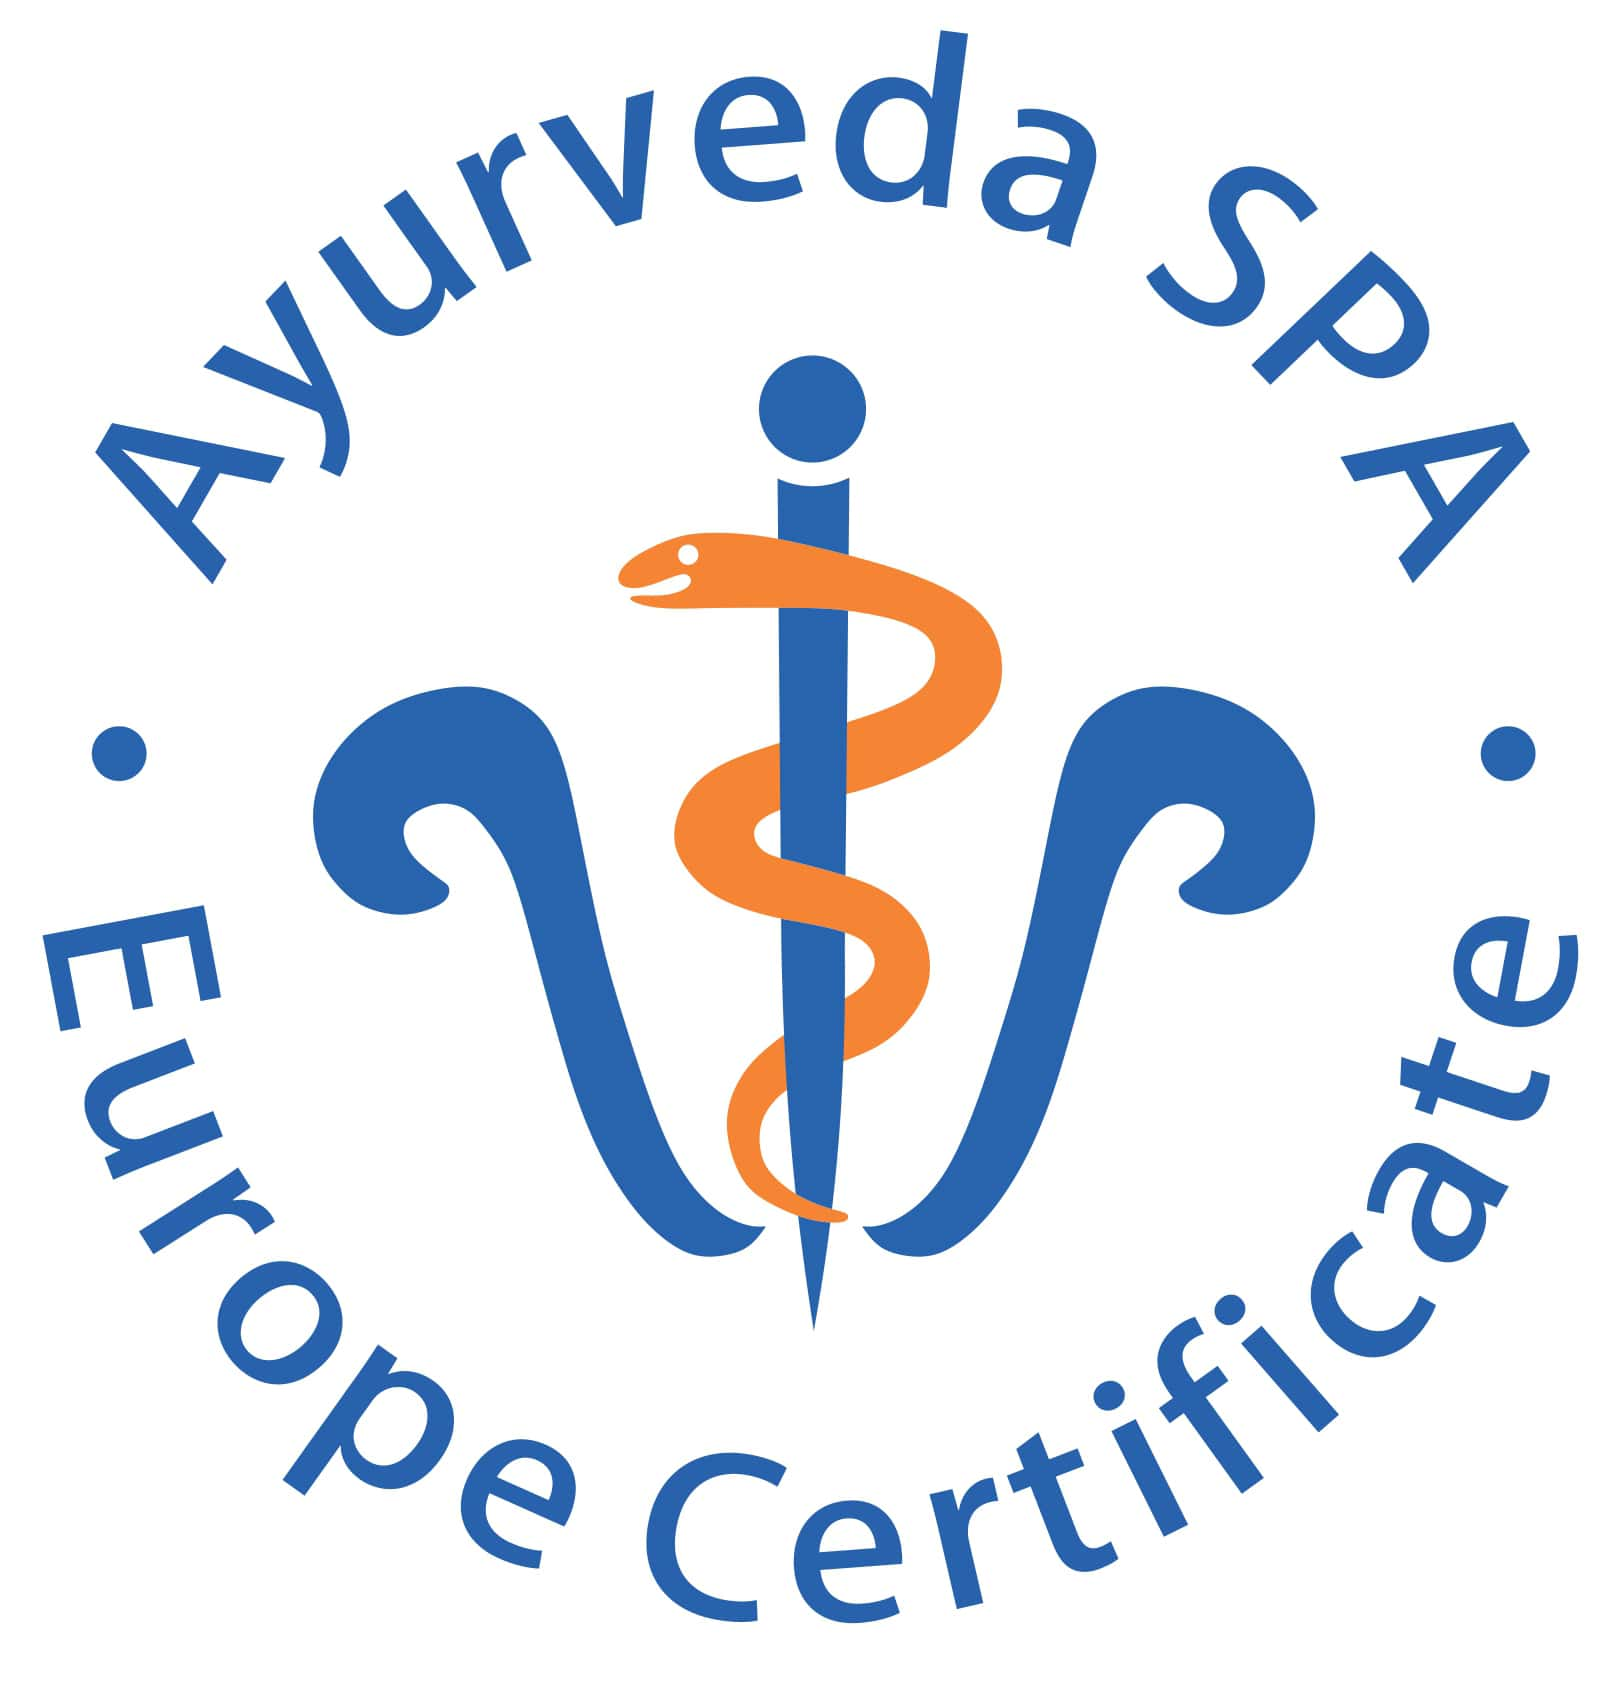 Accreditation - Ayurveda Spa Logo Leading - German Audit Institute